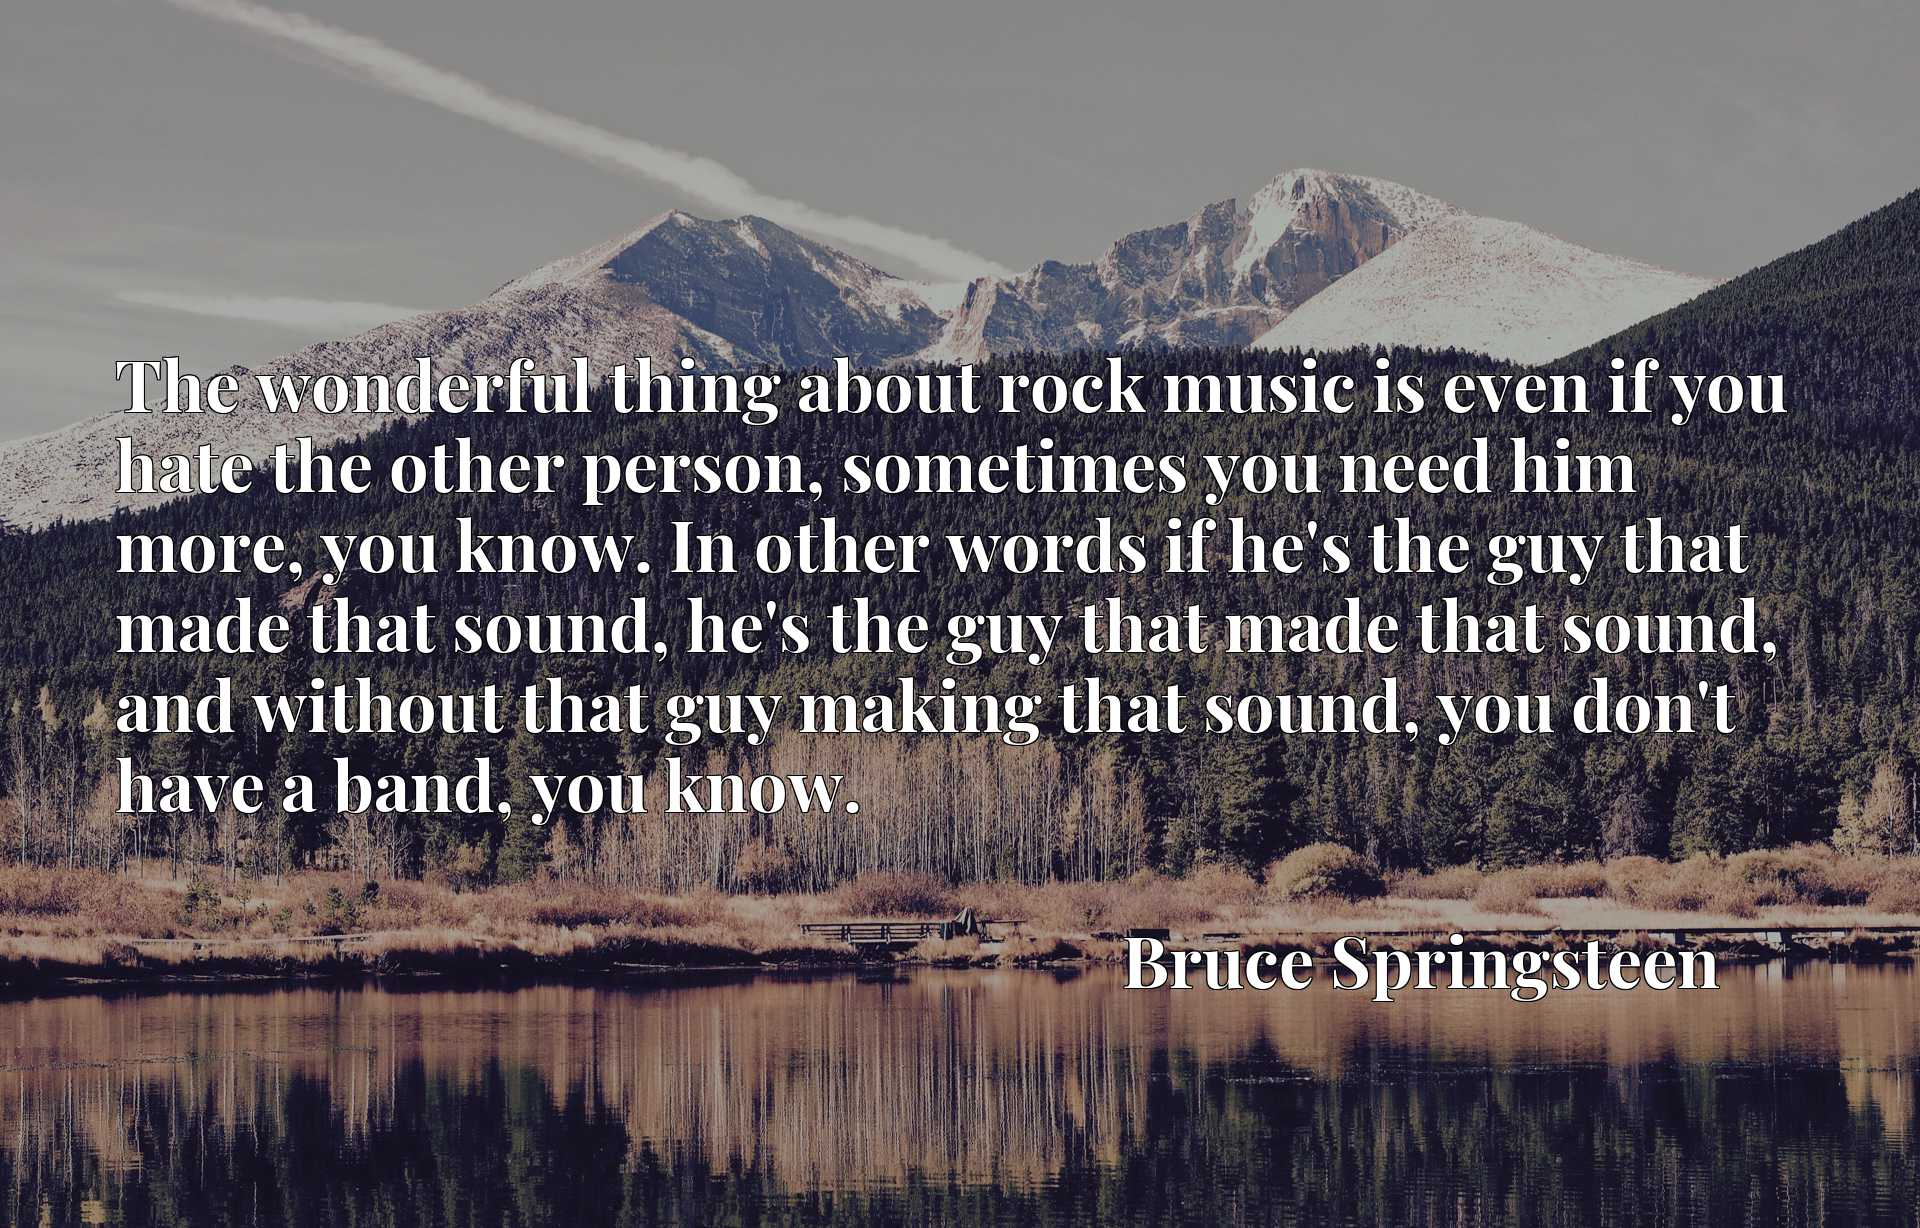 The wonderful thing about rock music is even if you hate the other person, sometimes you need him more, you know. In other words if he's the guy that made that sound, he's the guy that made that sound, and without that guy making that sound, you don't have a band, you know.